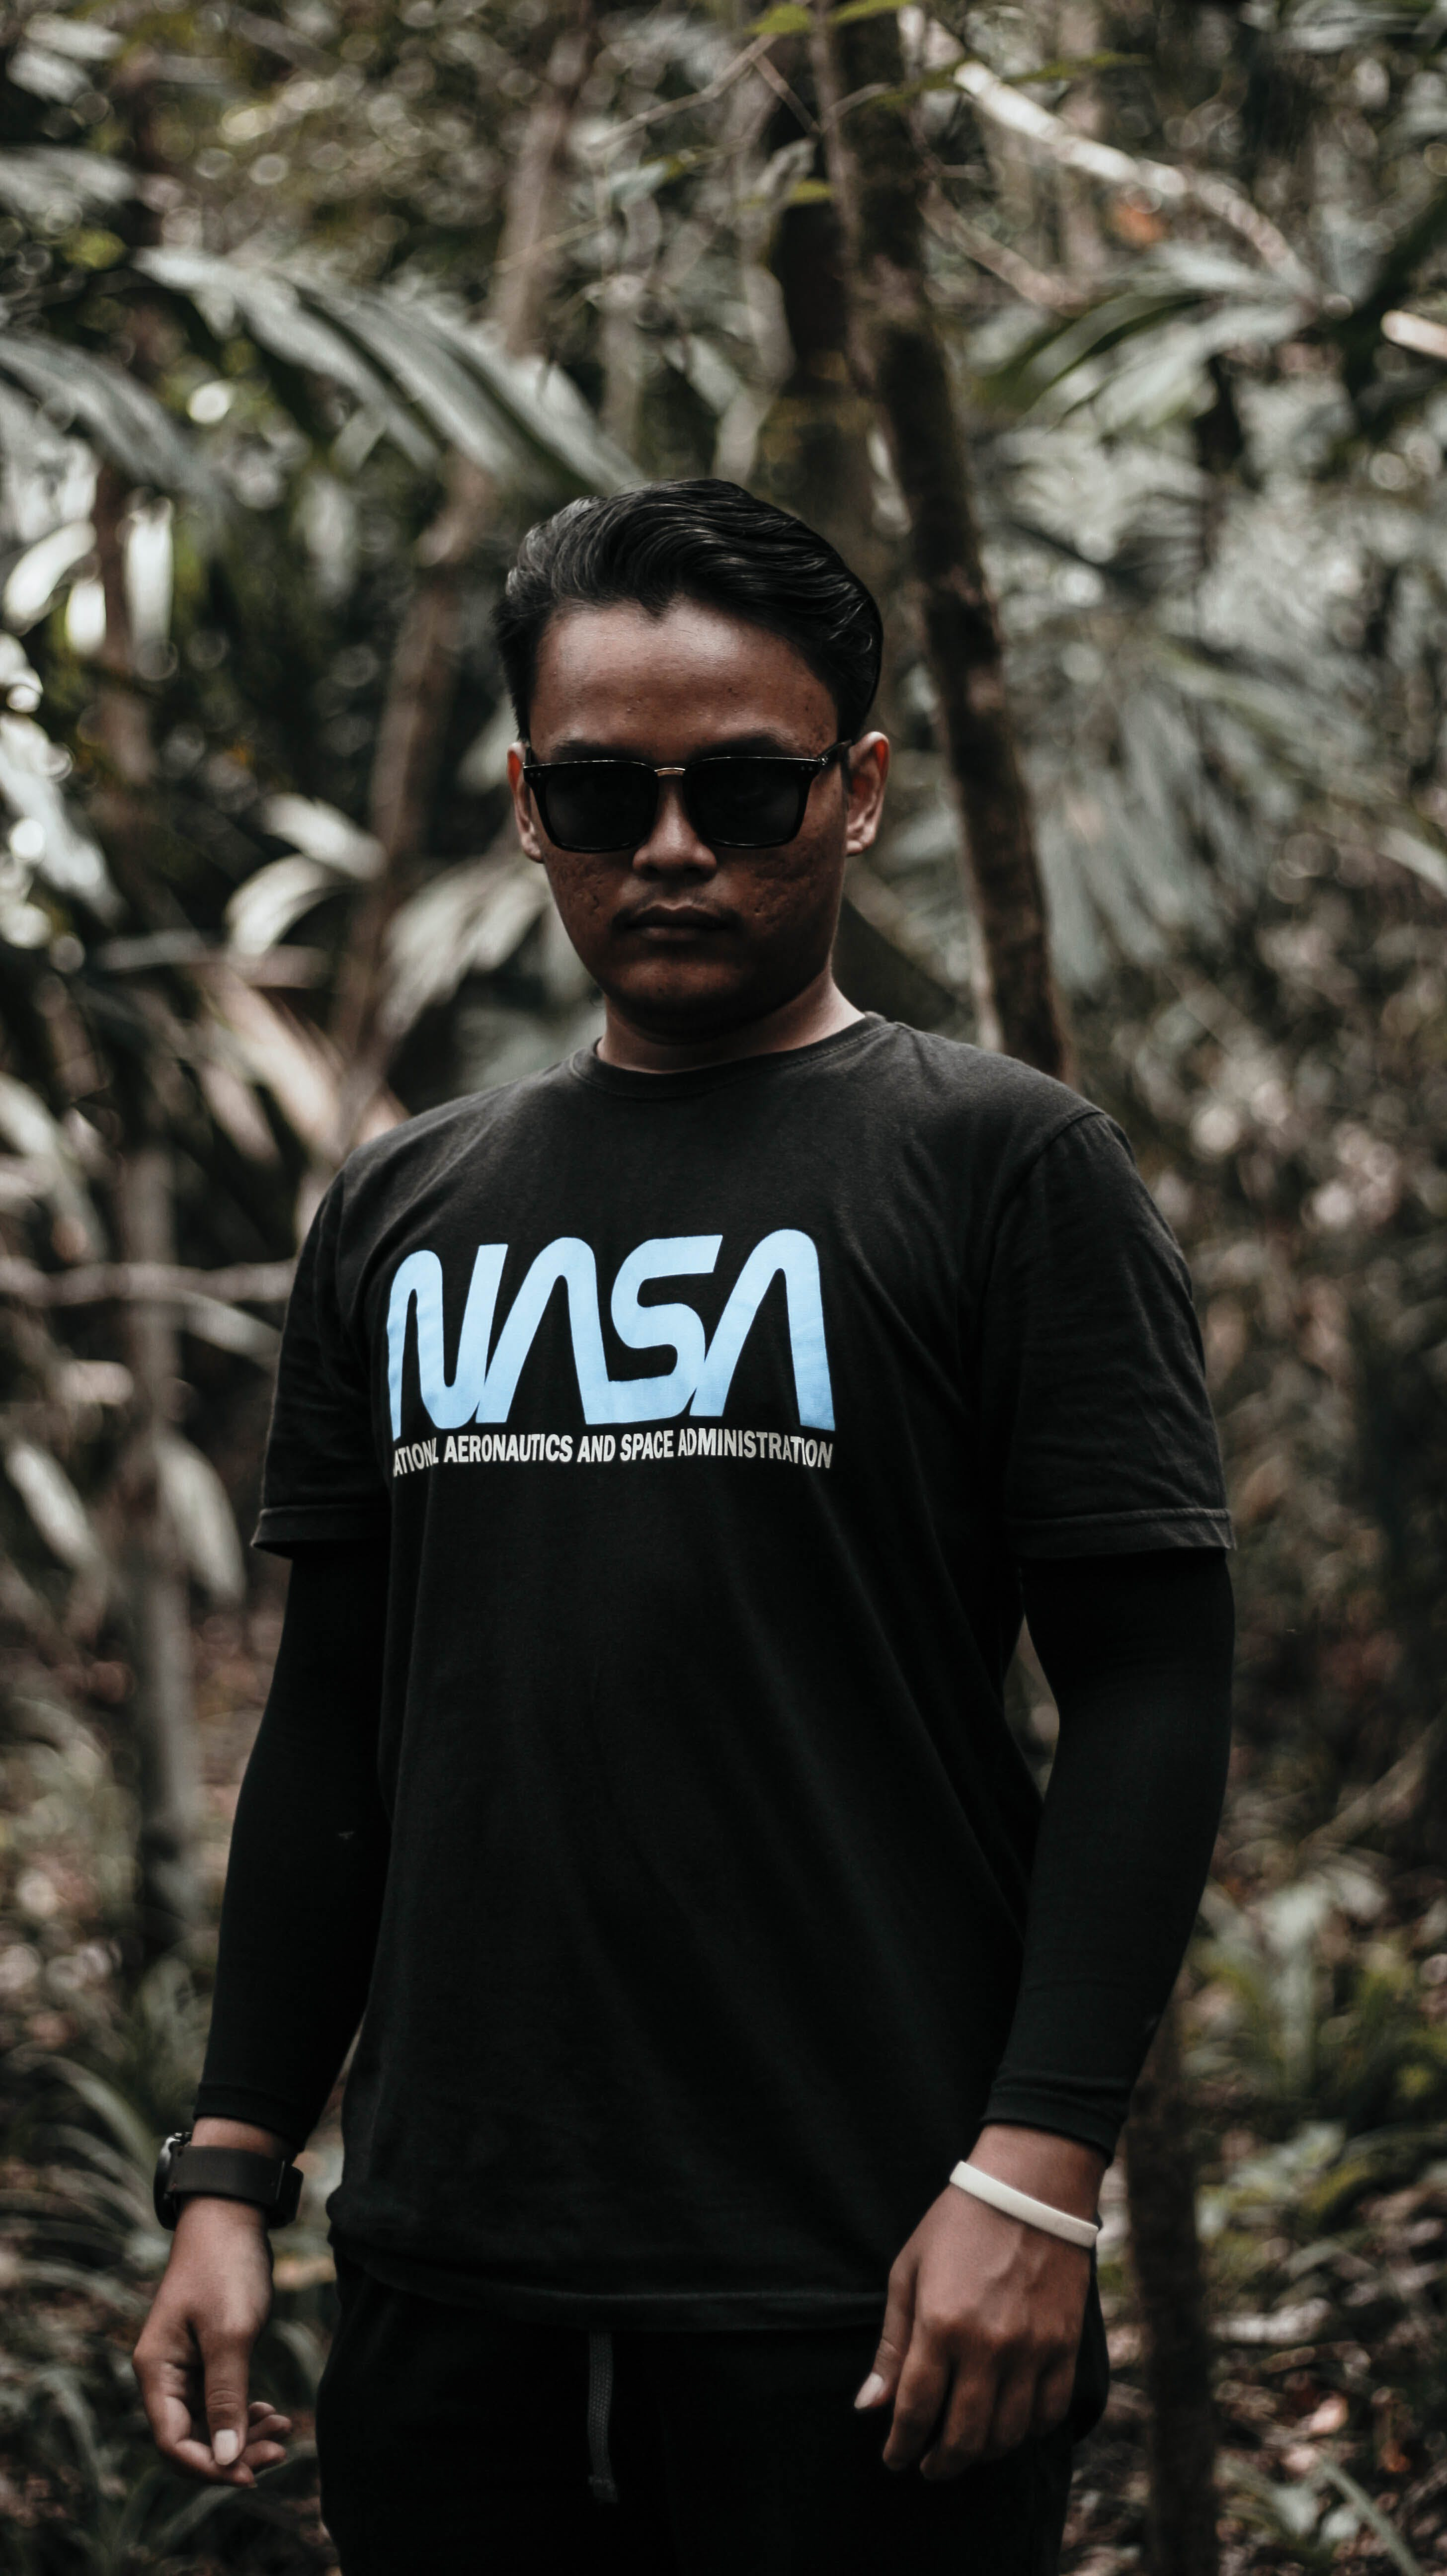 Man In Black Nasa Long-sleeved Shirt